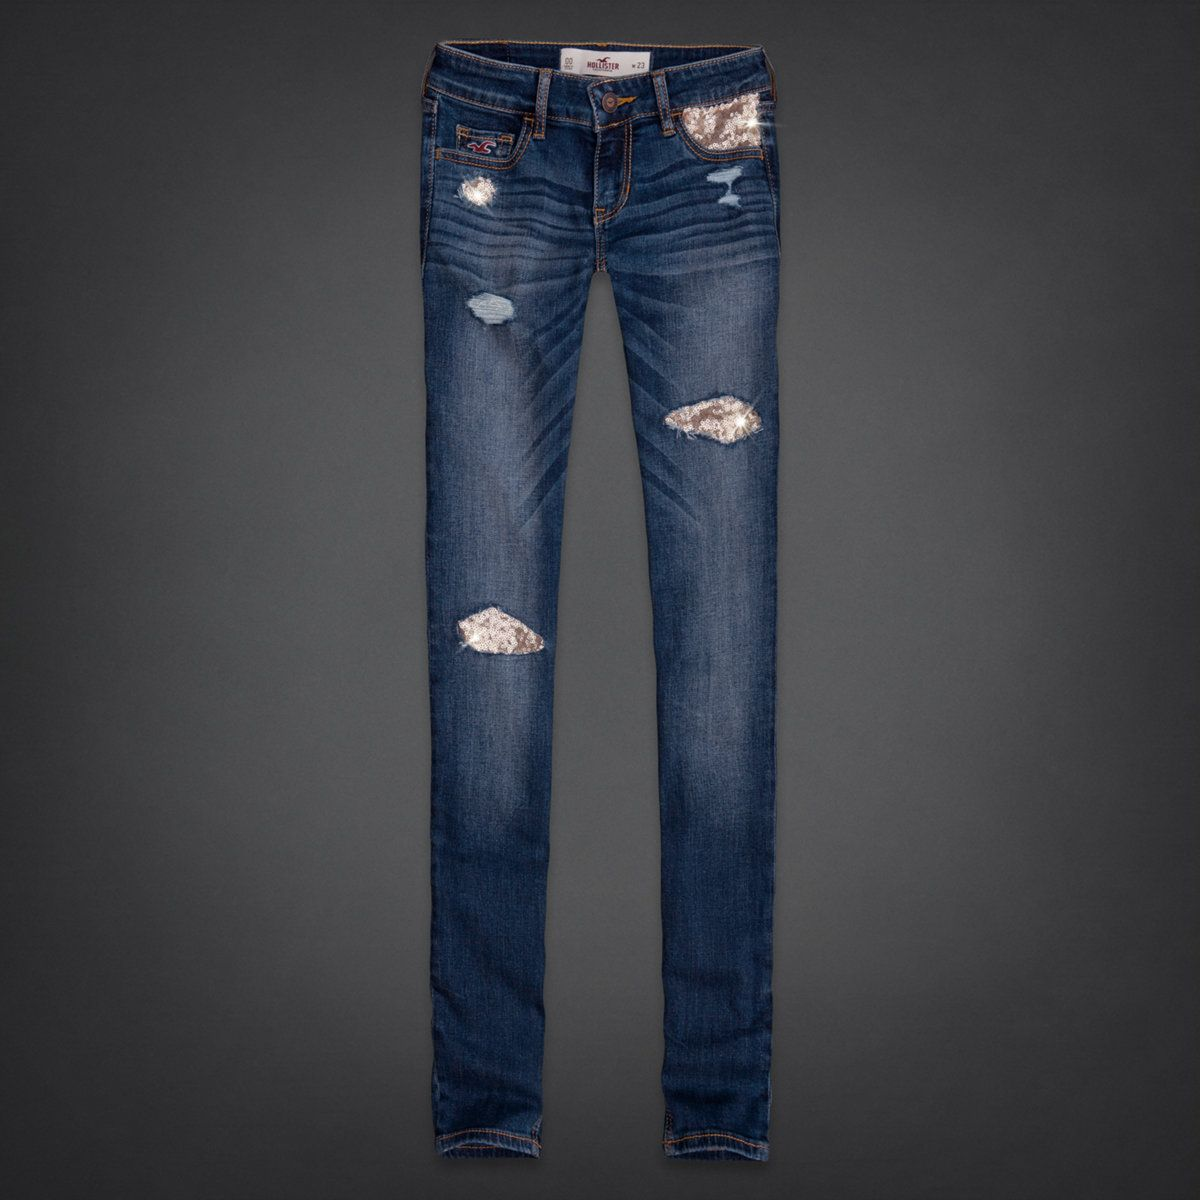 Hollister glitter jeans | cute clothes | Pinterest | See ...